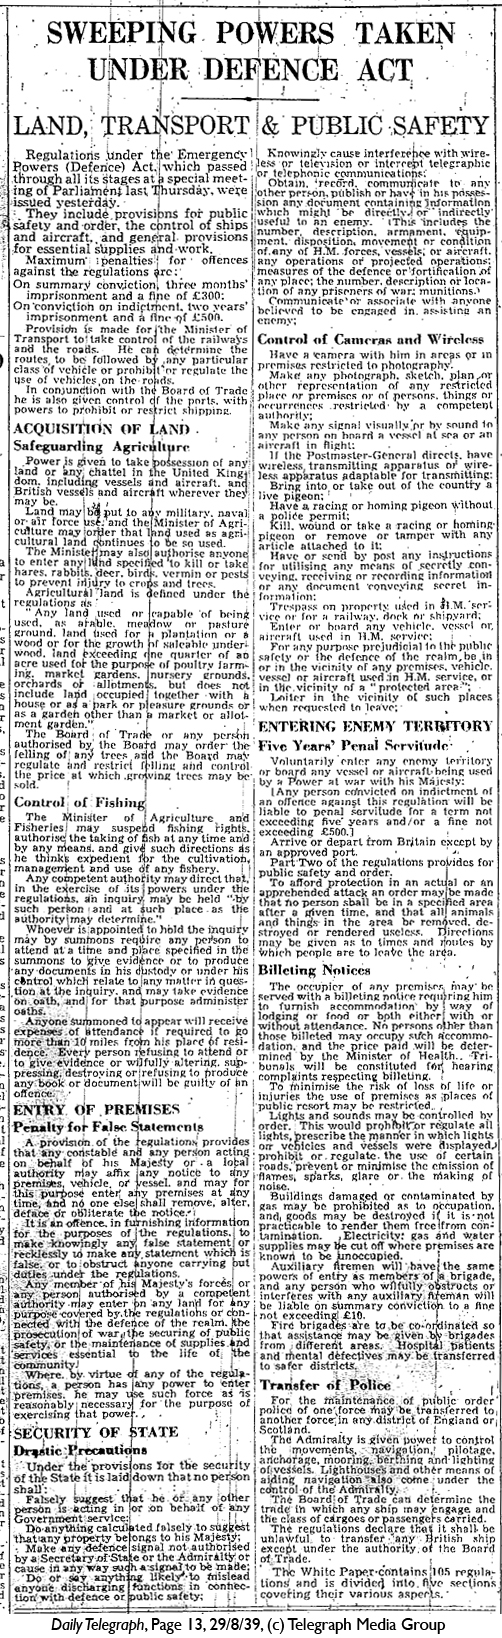 Daily Telegraph 29-8-39 Page 13